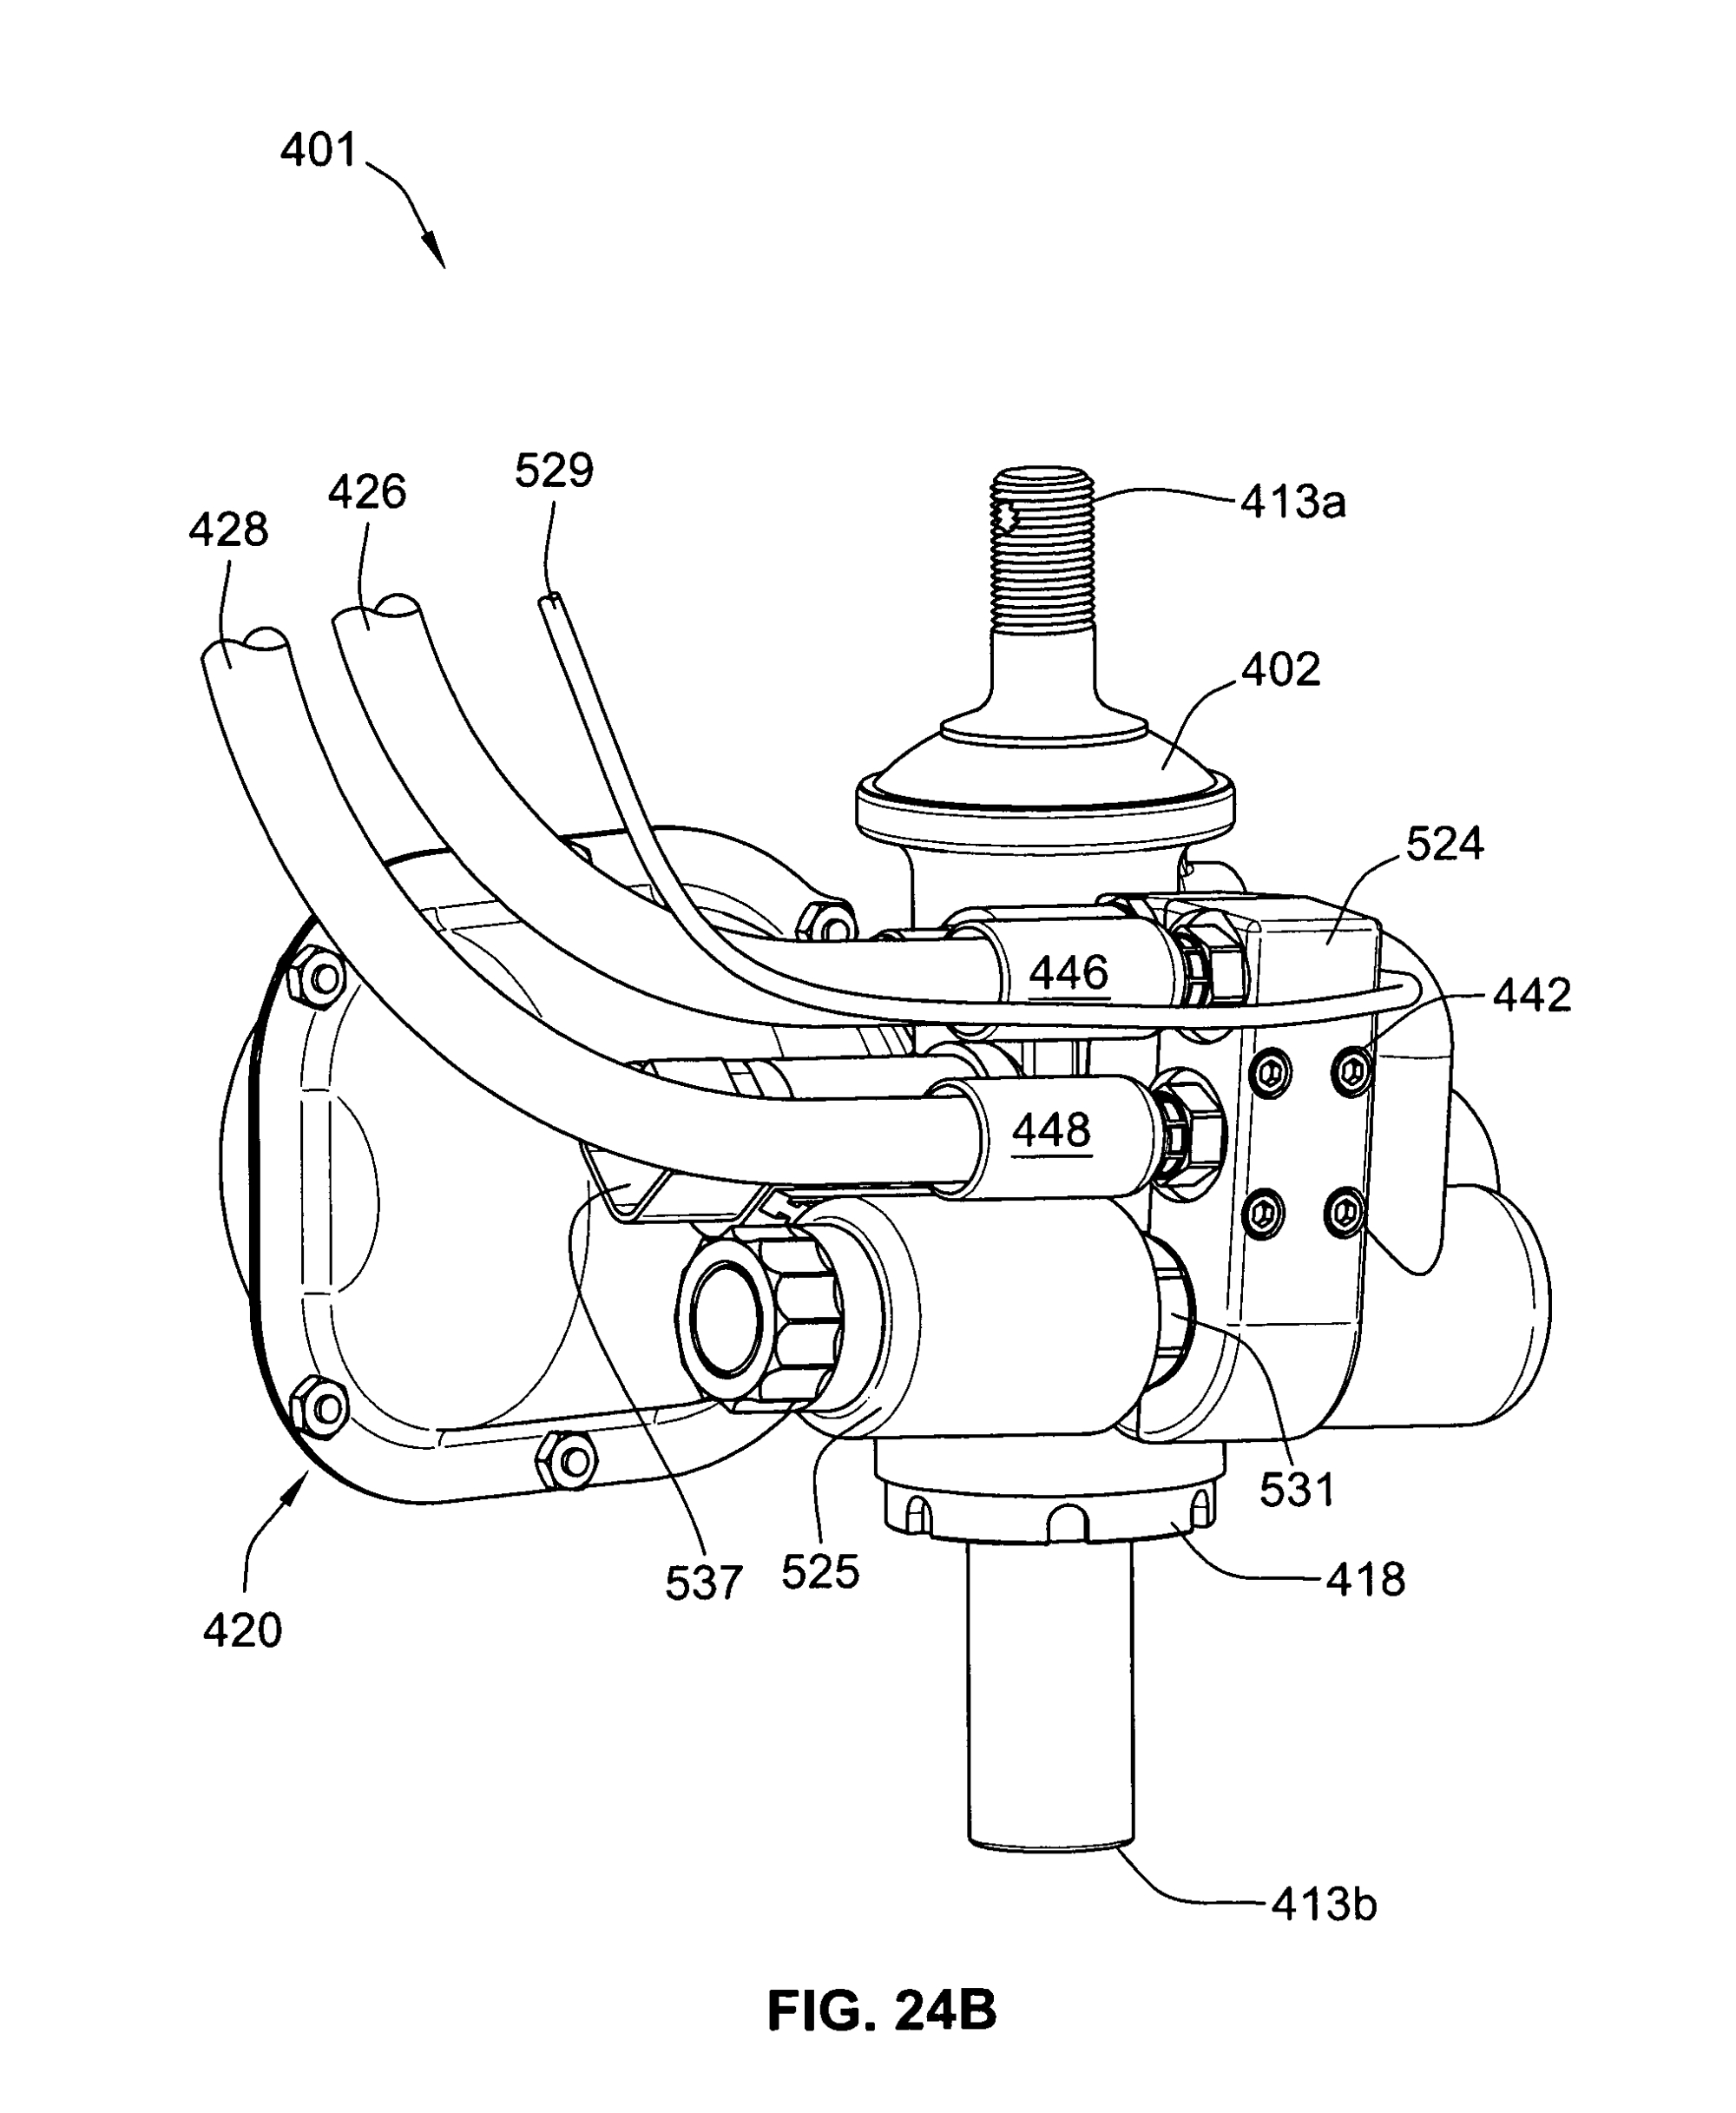 hight resolution of 8n ford tractor hydraulics diagram international h tractor wiring international cub tractor wiring 424 international tractor